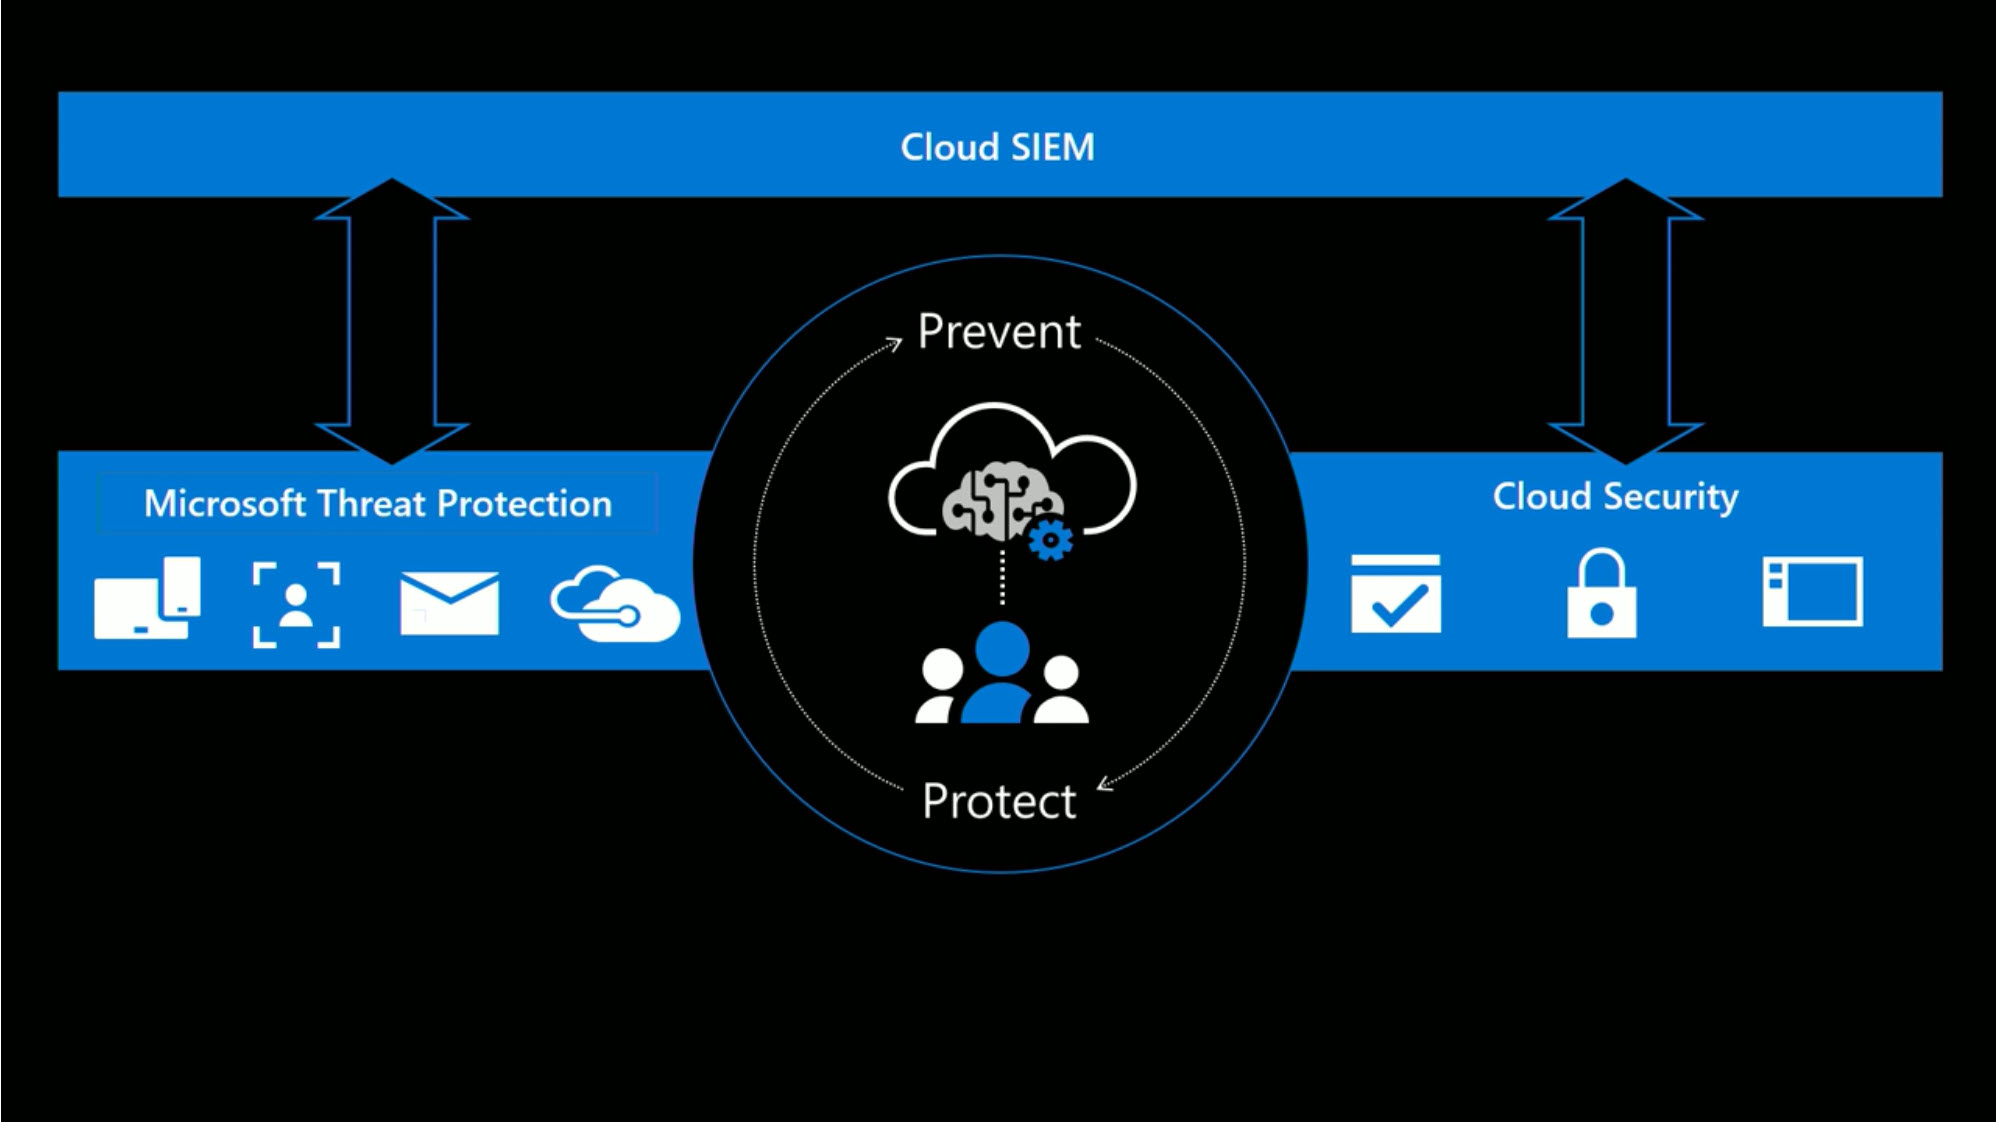 Cloud SIEM brought to you by Microsoft ;)